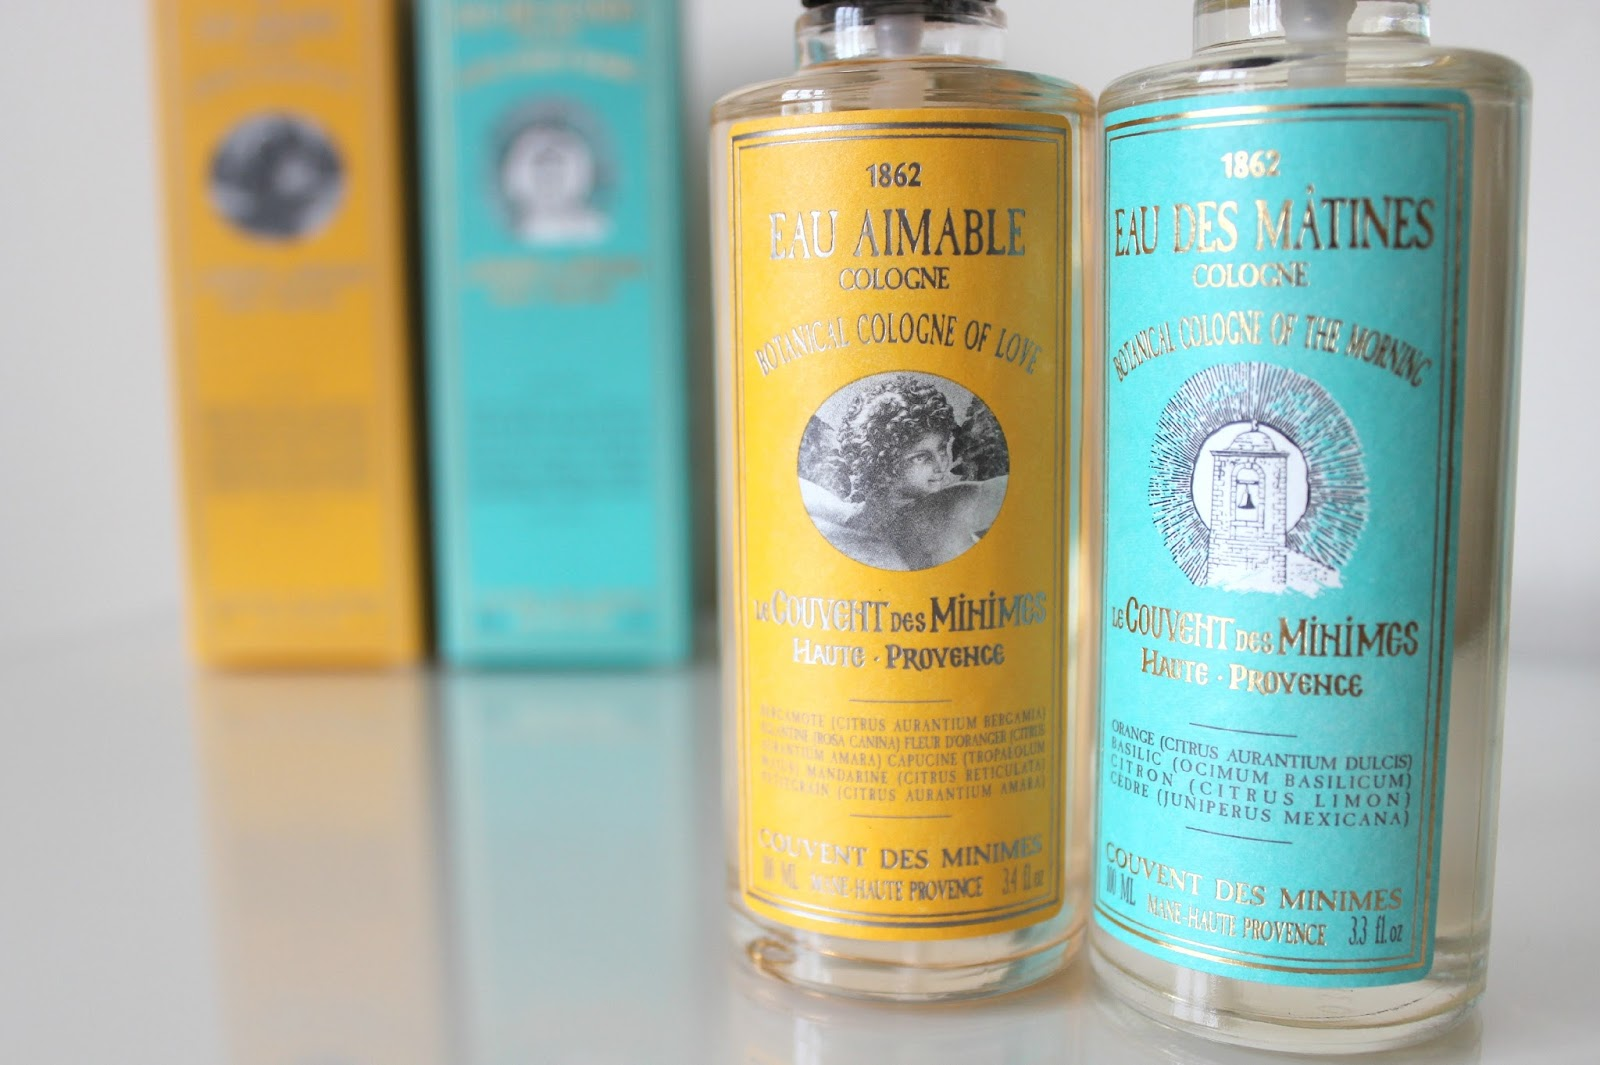 A picture of Le Couvent des Minimes Botanical Cologne